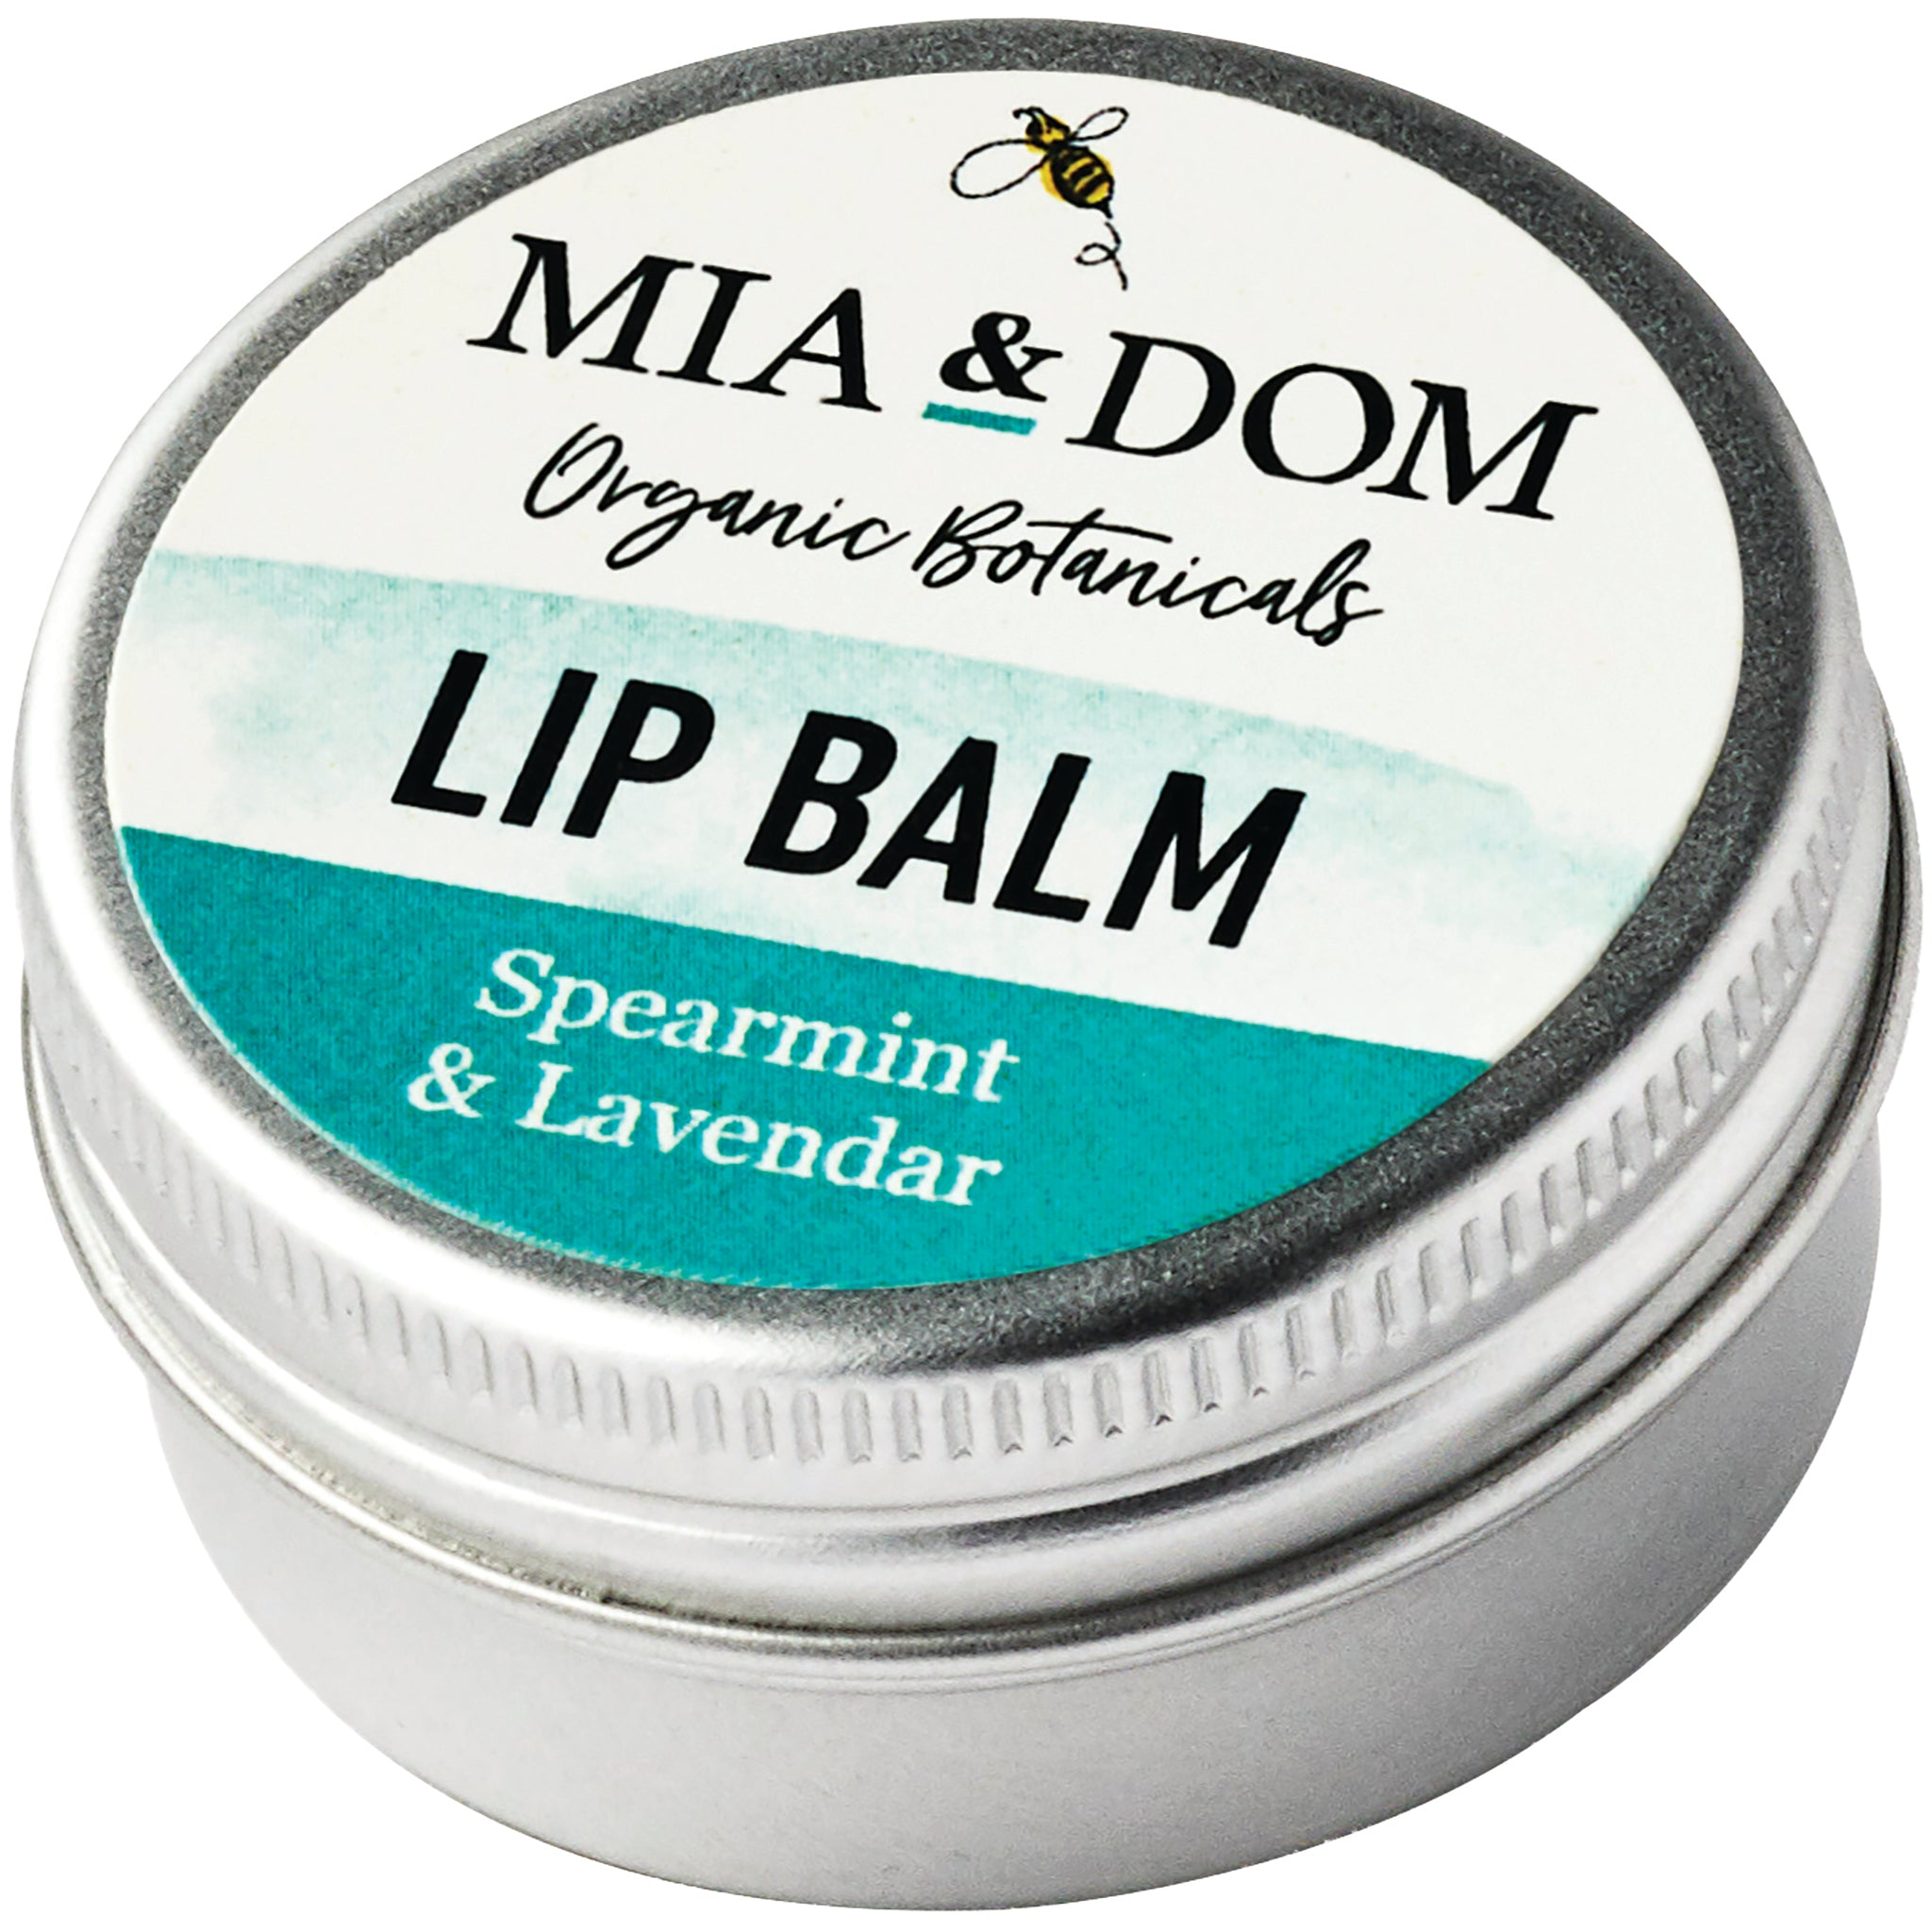 Lip Balm Spearmint & Lavender